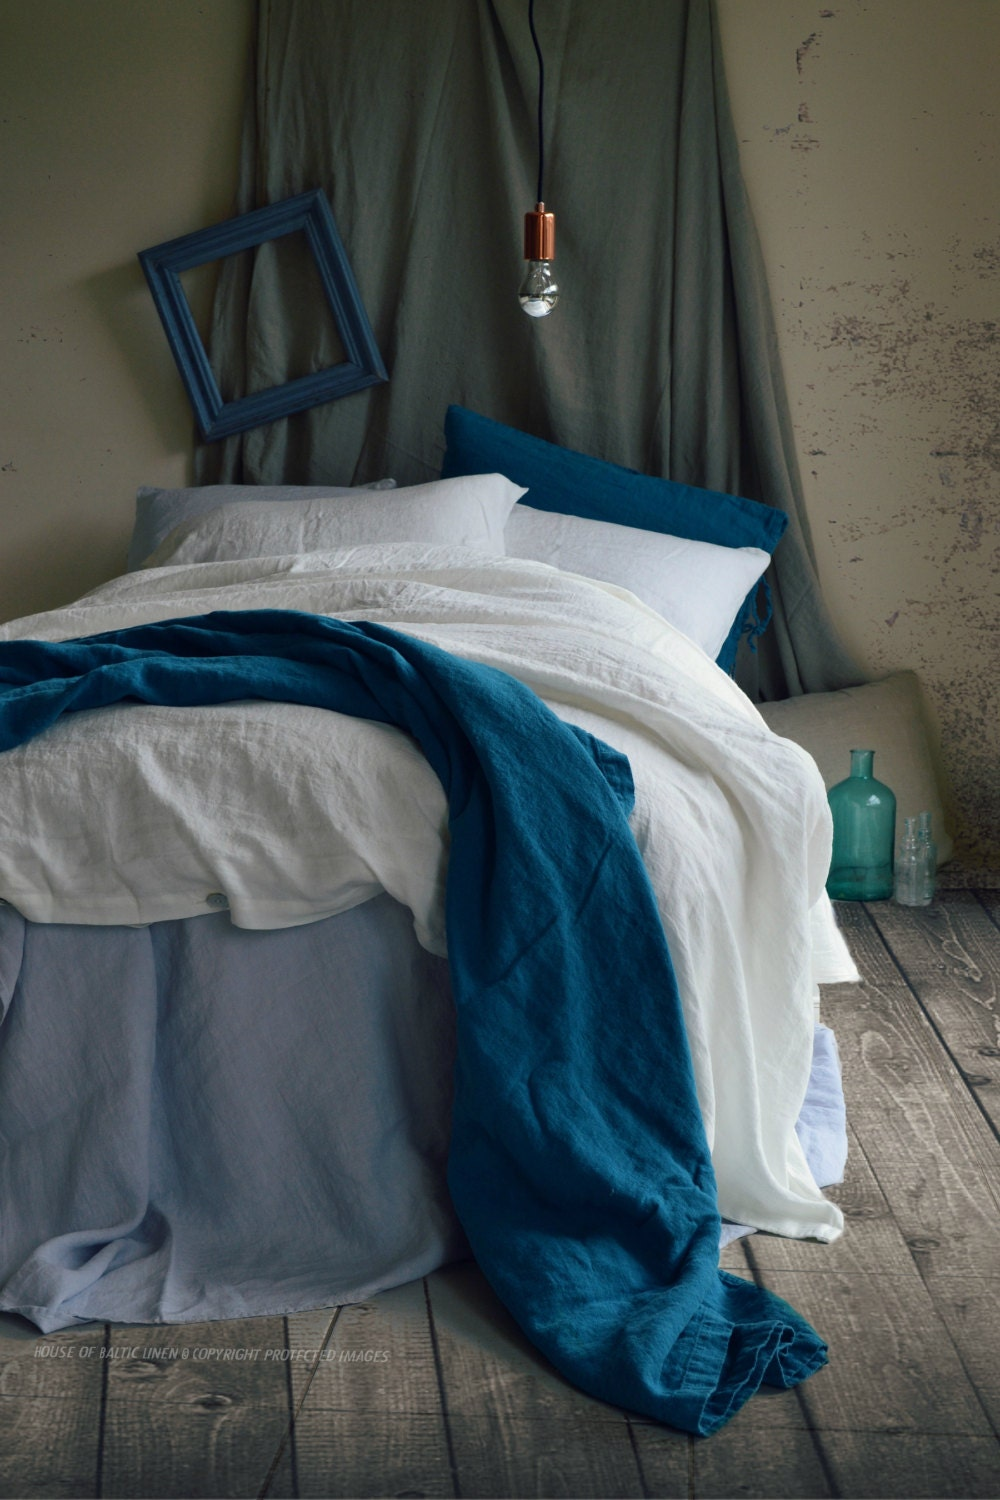 Pure White Linen Duvet Cover By House Of Baltic Linen